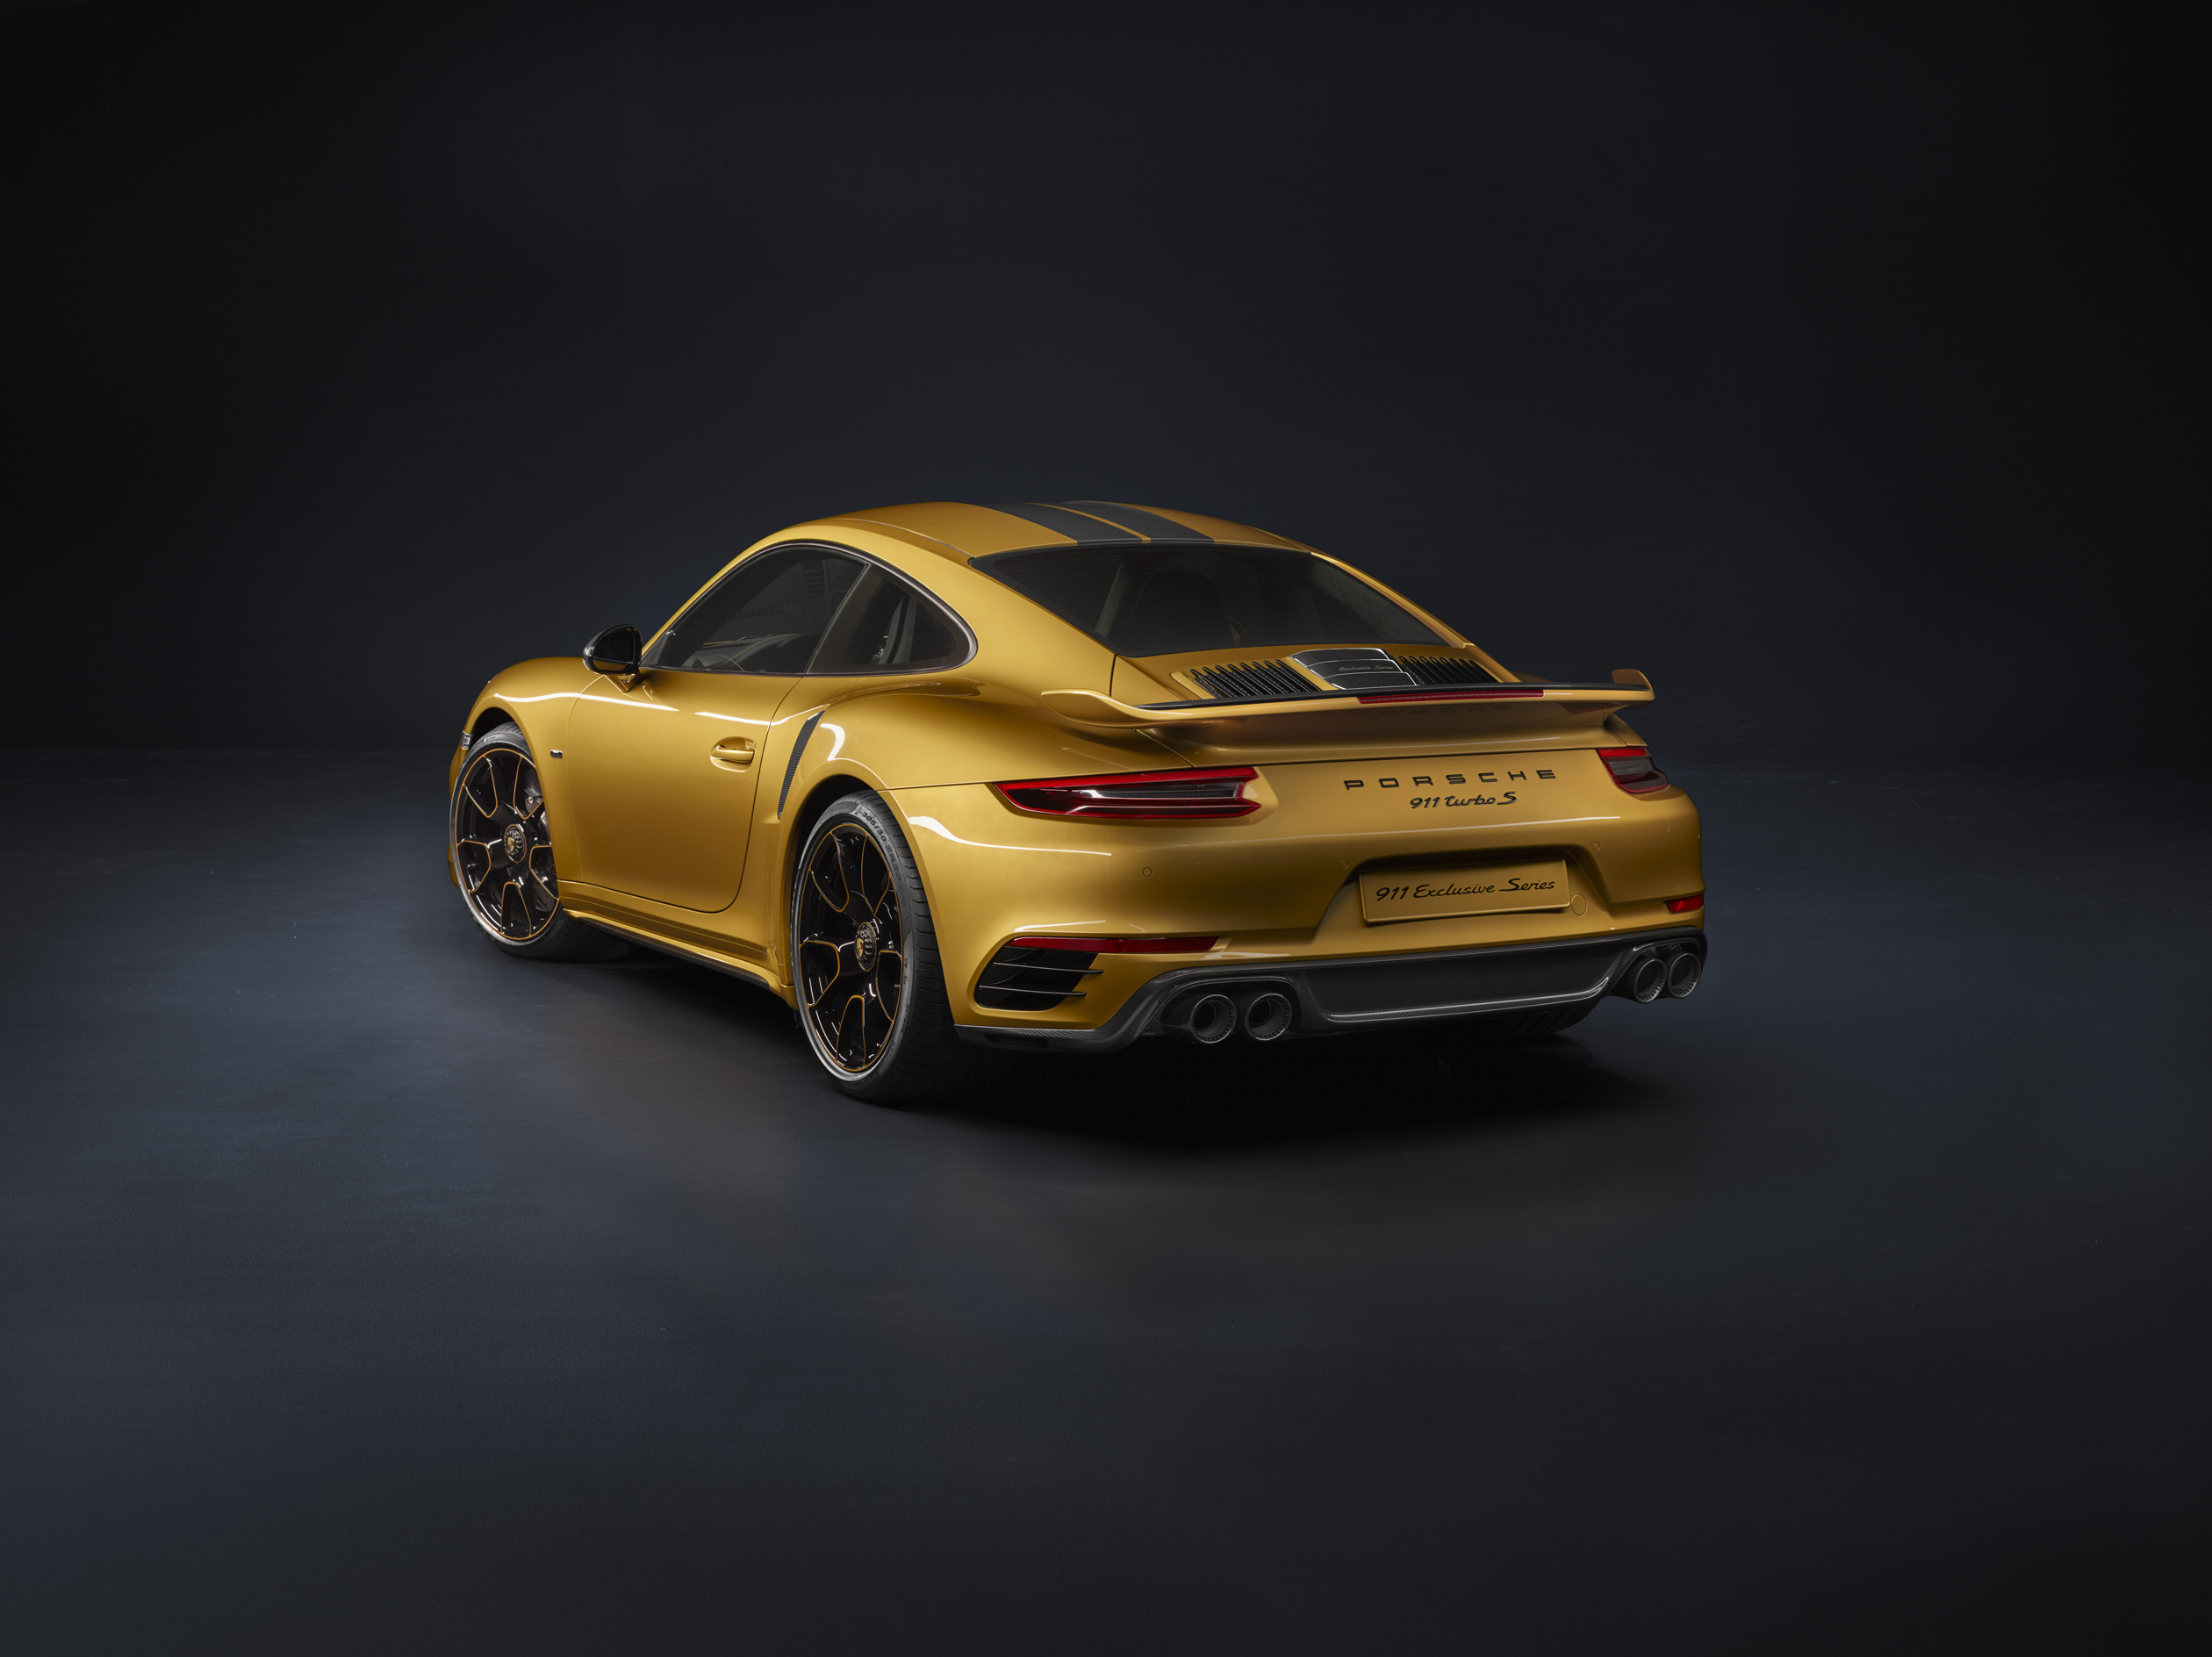 【新事】世上只有500台,Porsche 911 Turbo S Exclusive Series全球限量版